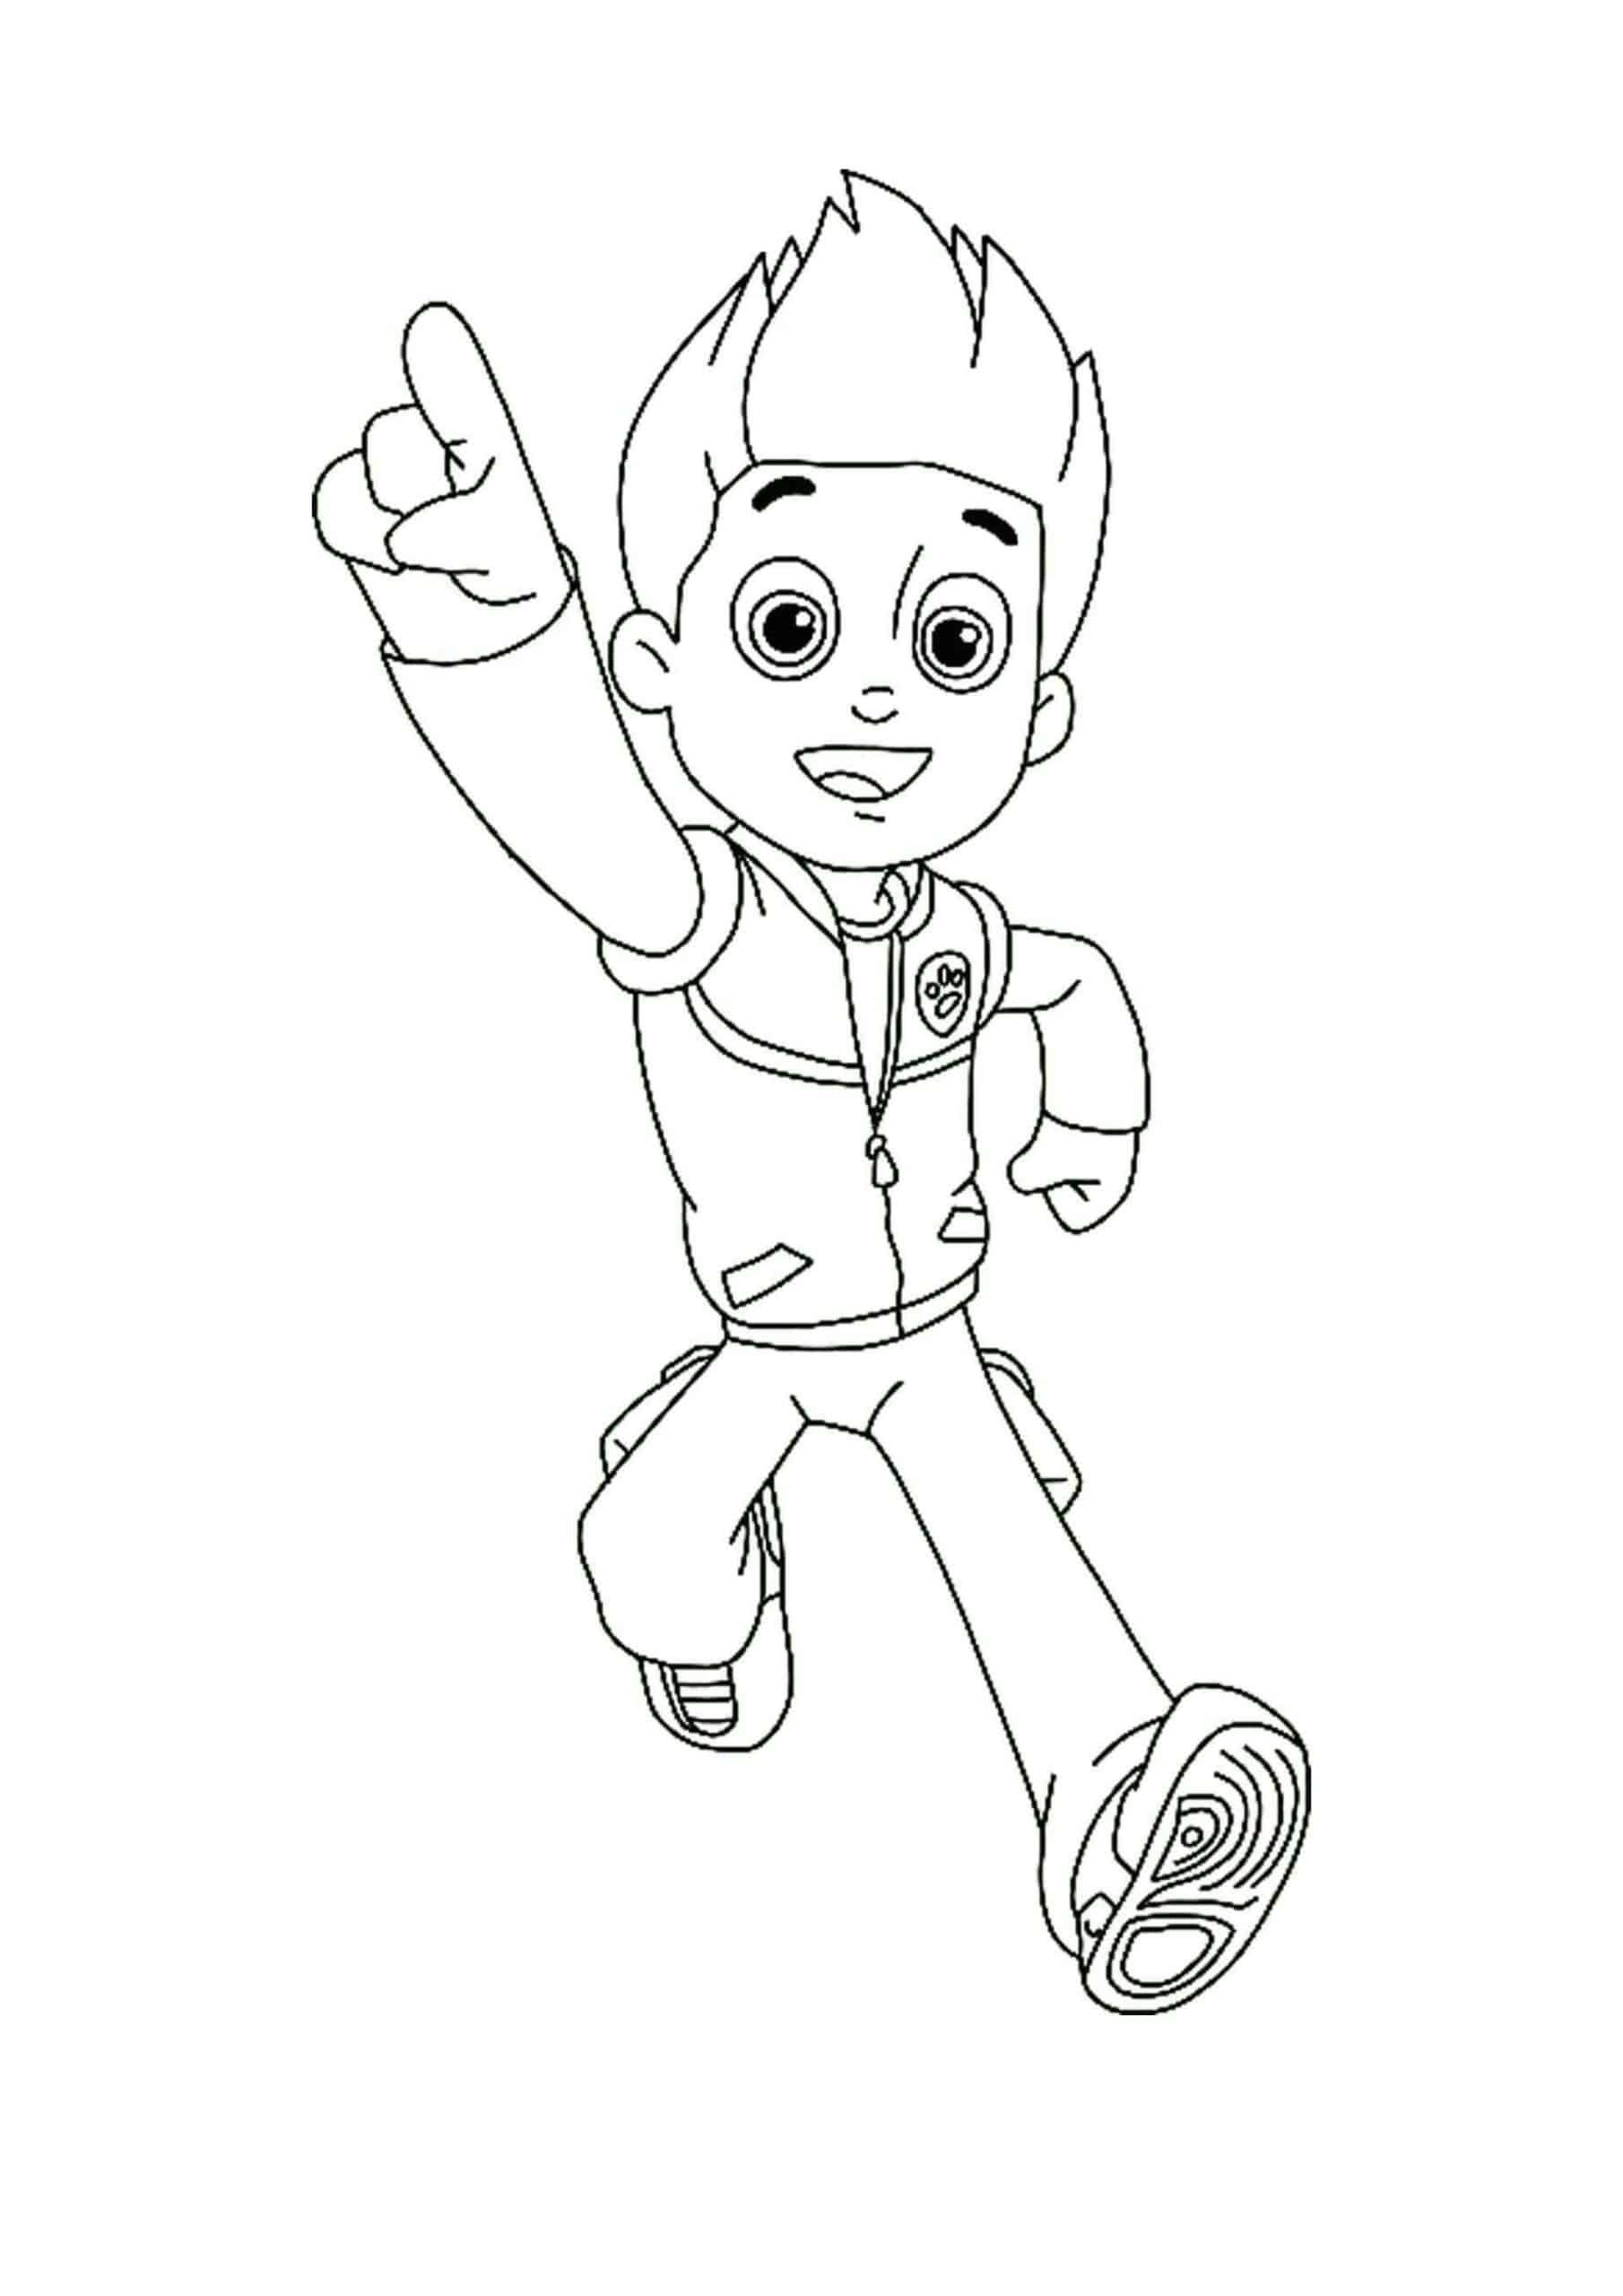 Paw Patrol Ryder Coloring Pages  Paw patrol coloring pages, Ryder